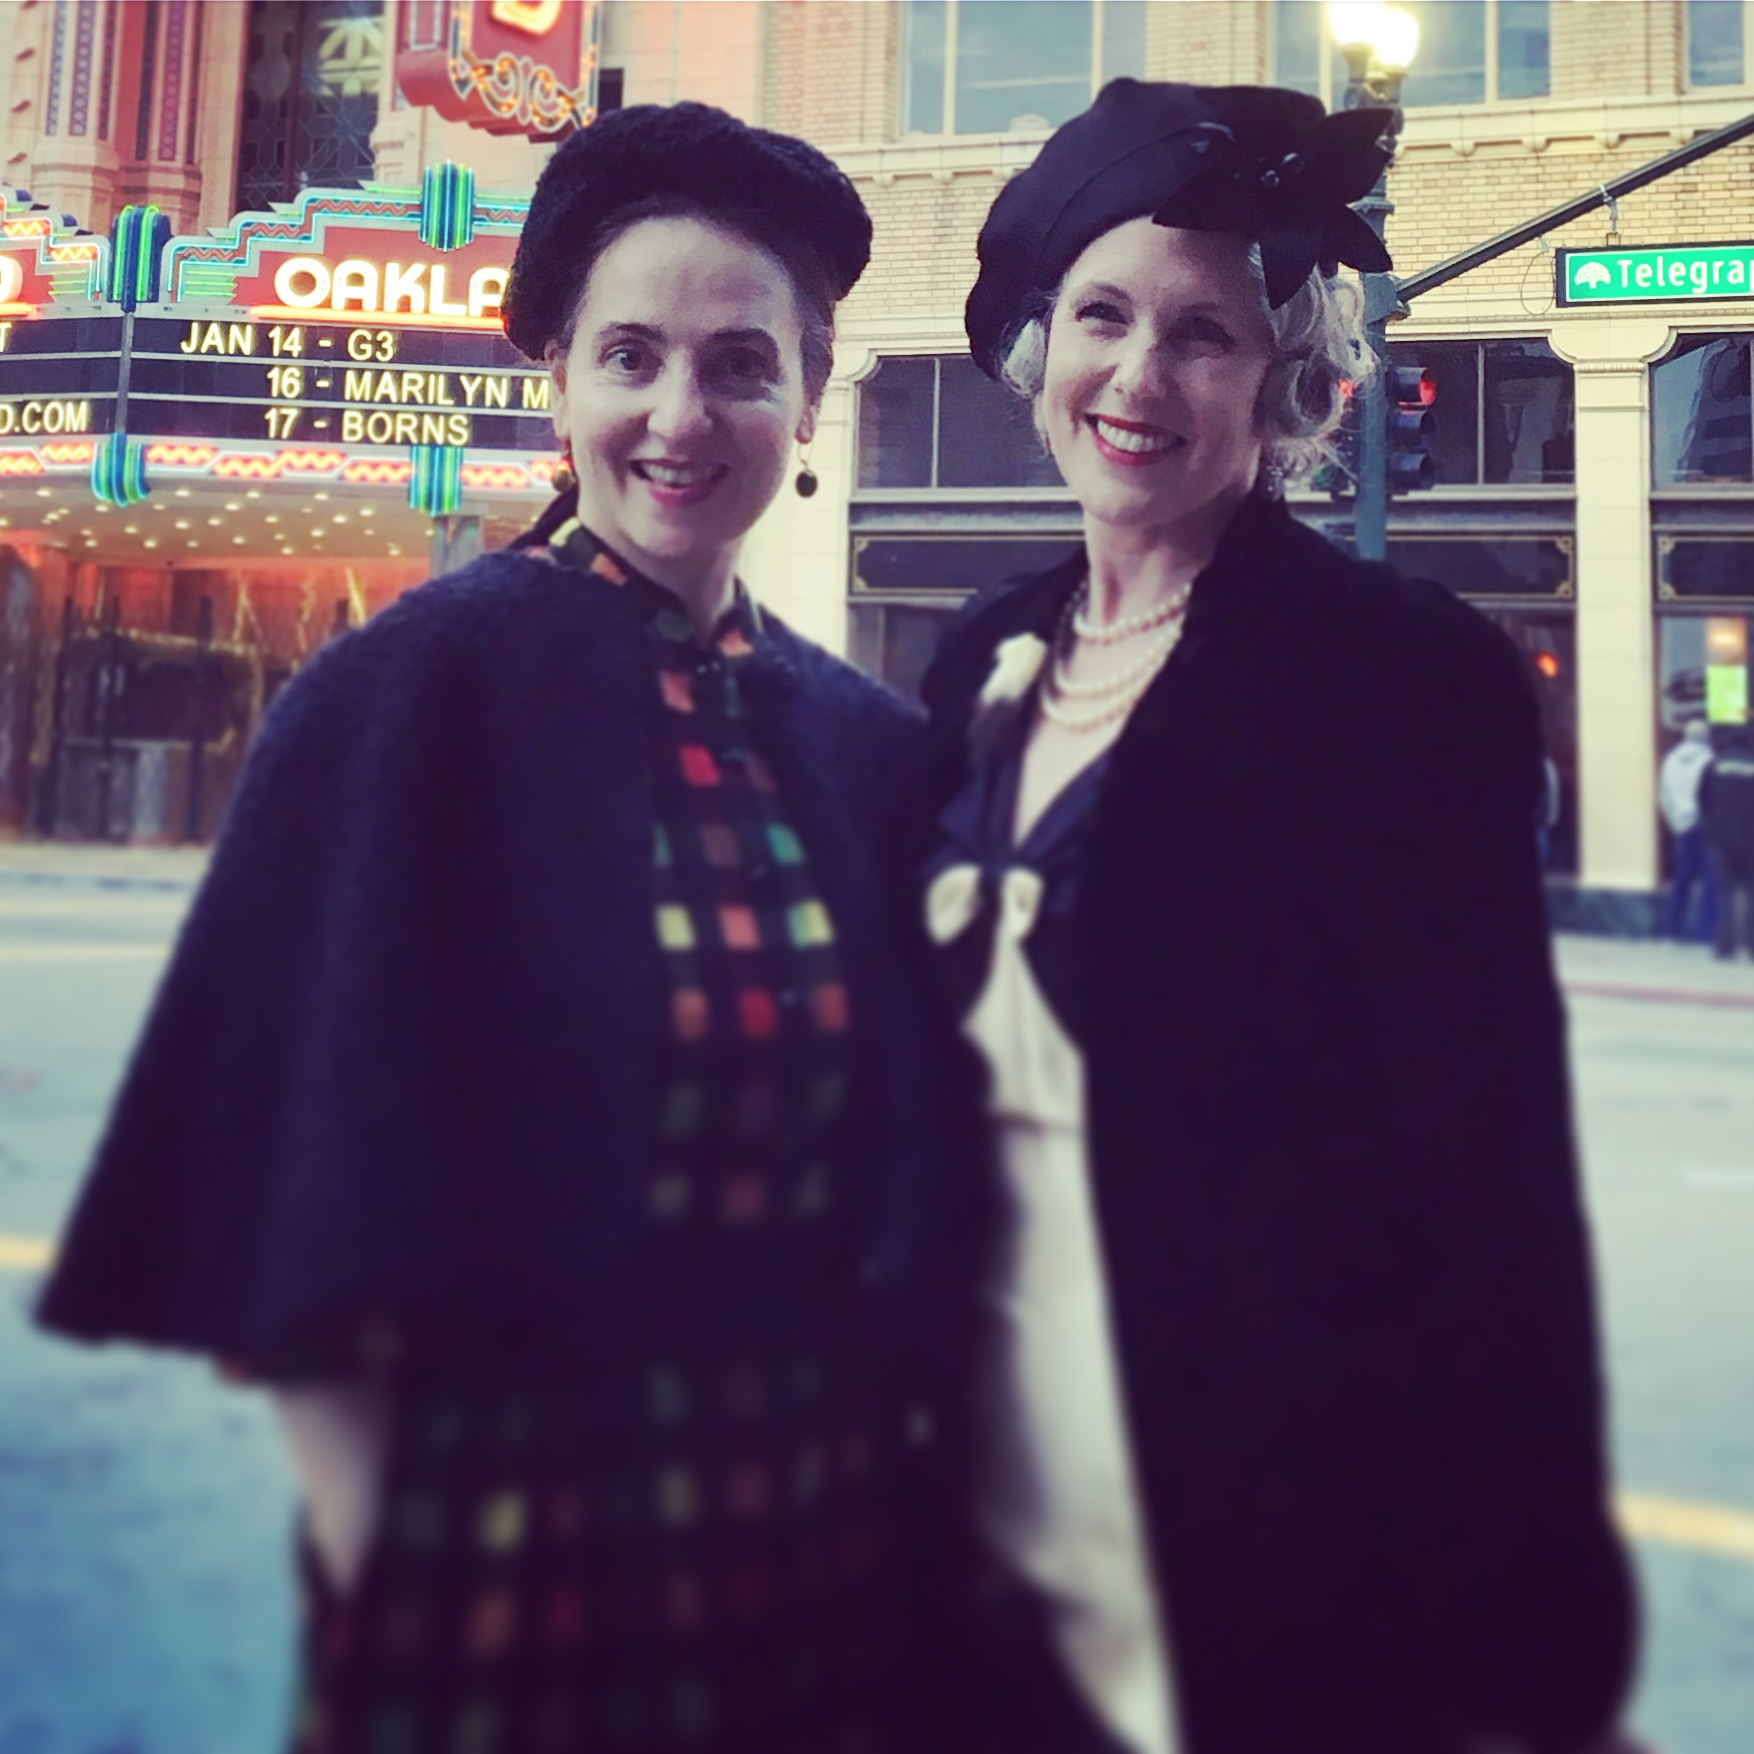 Here I am wearing the coat, pictured next to my friend Leah Vass, in front of the Fox Theater in Downtown Oakland.  It did not have a lining in it - Such a risk!